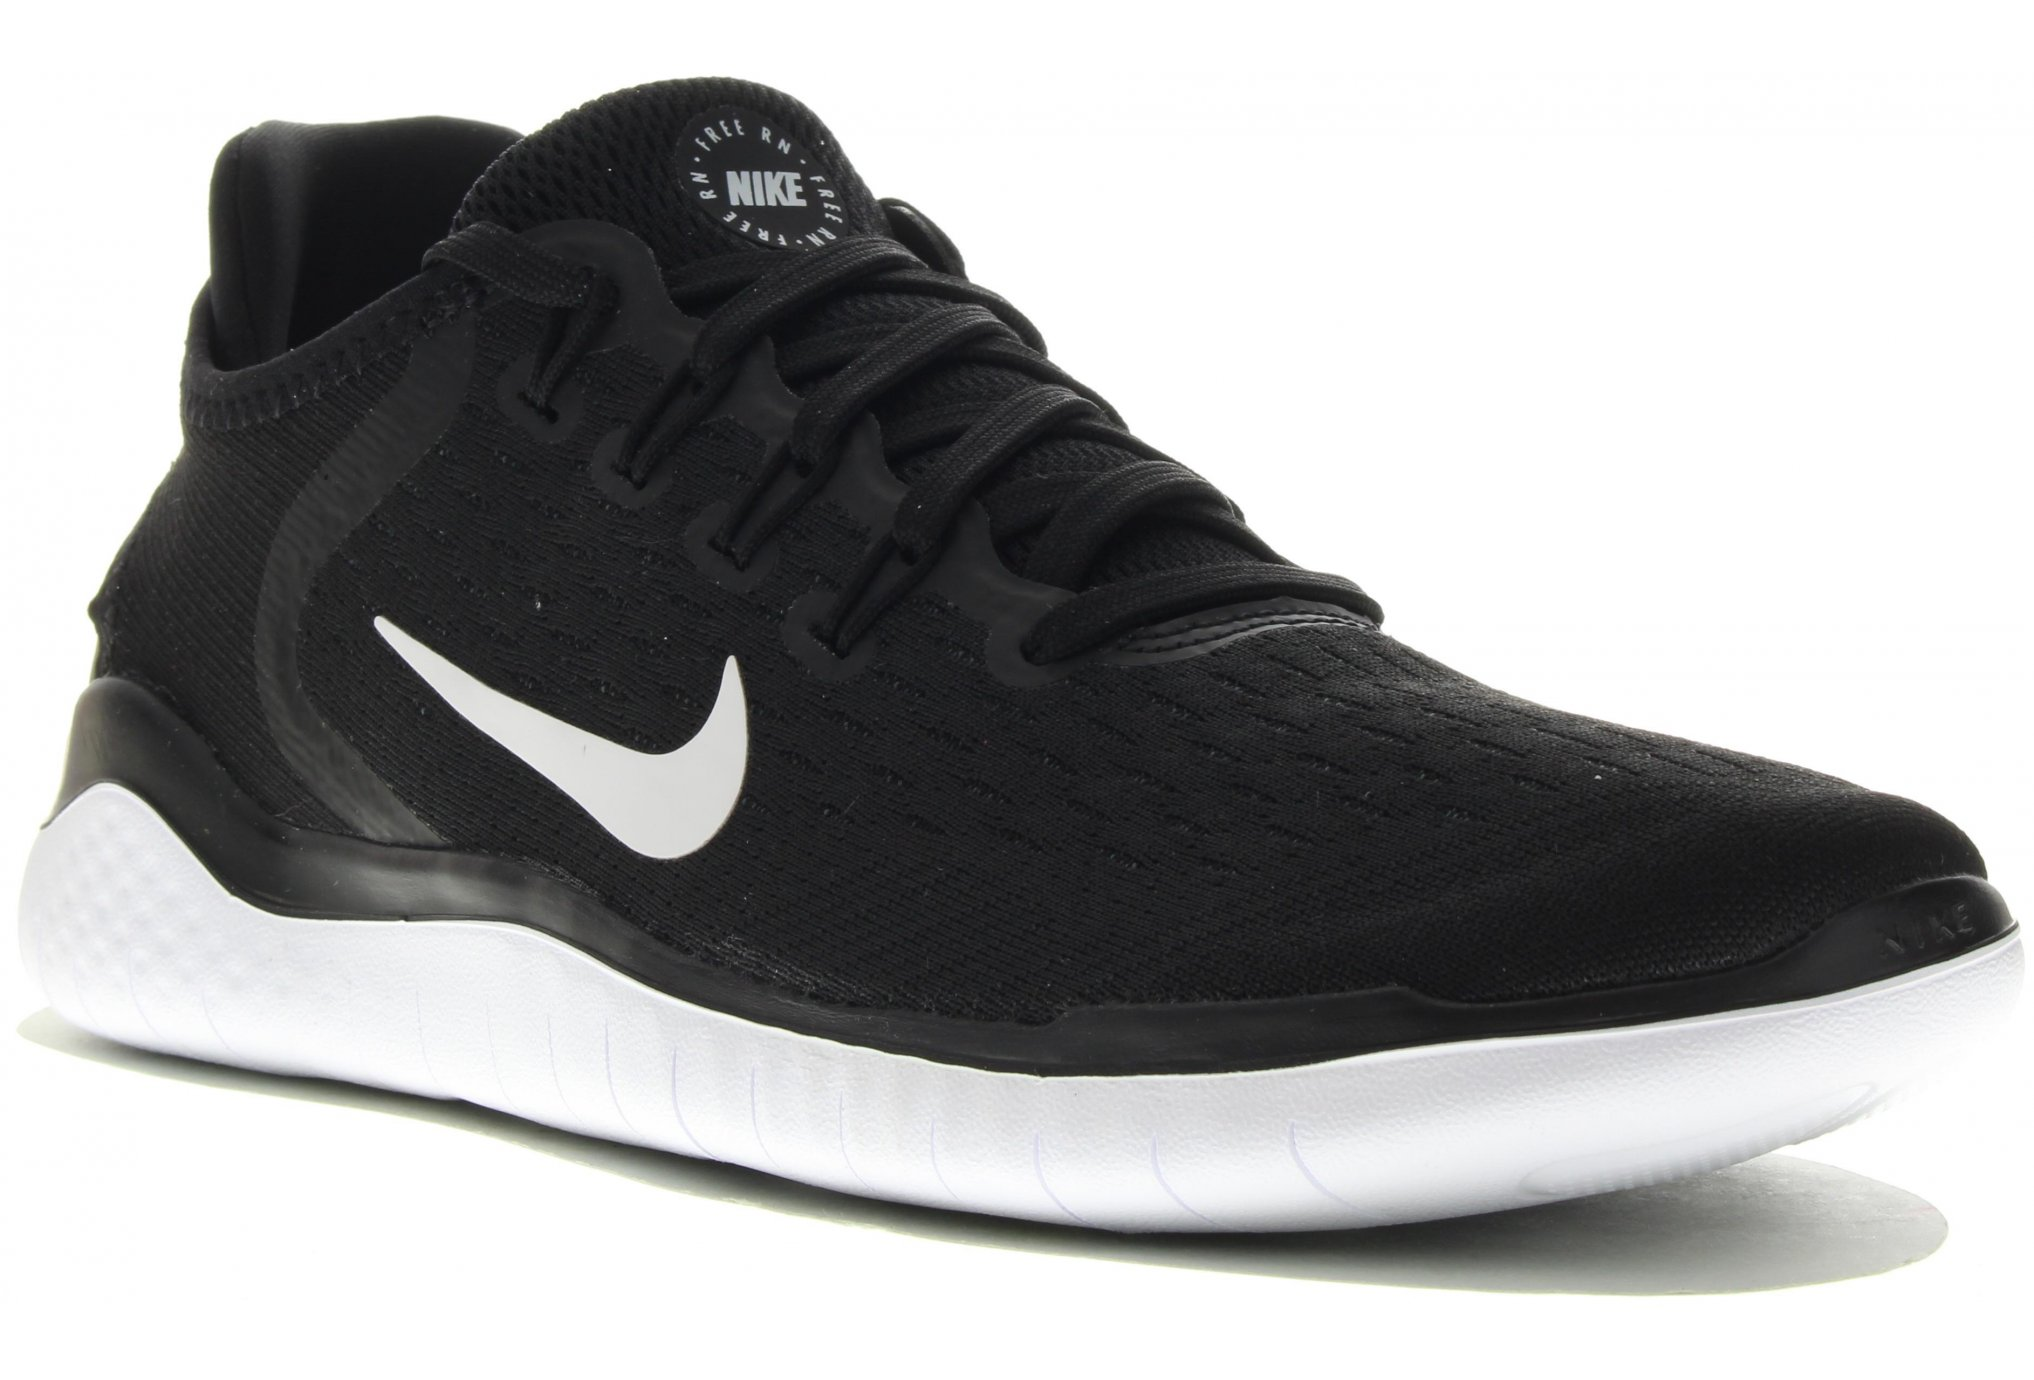 Nike Free RN 2018 Chaussures running femme